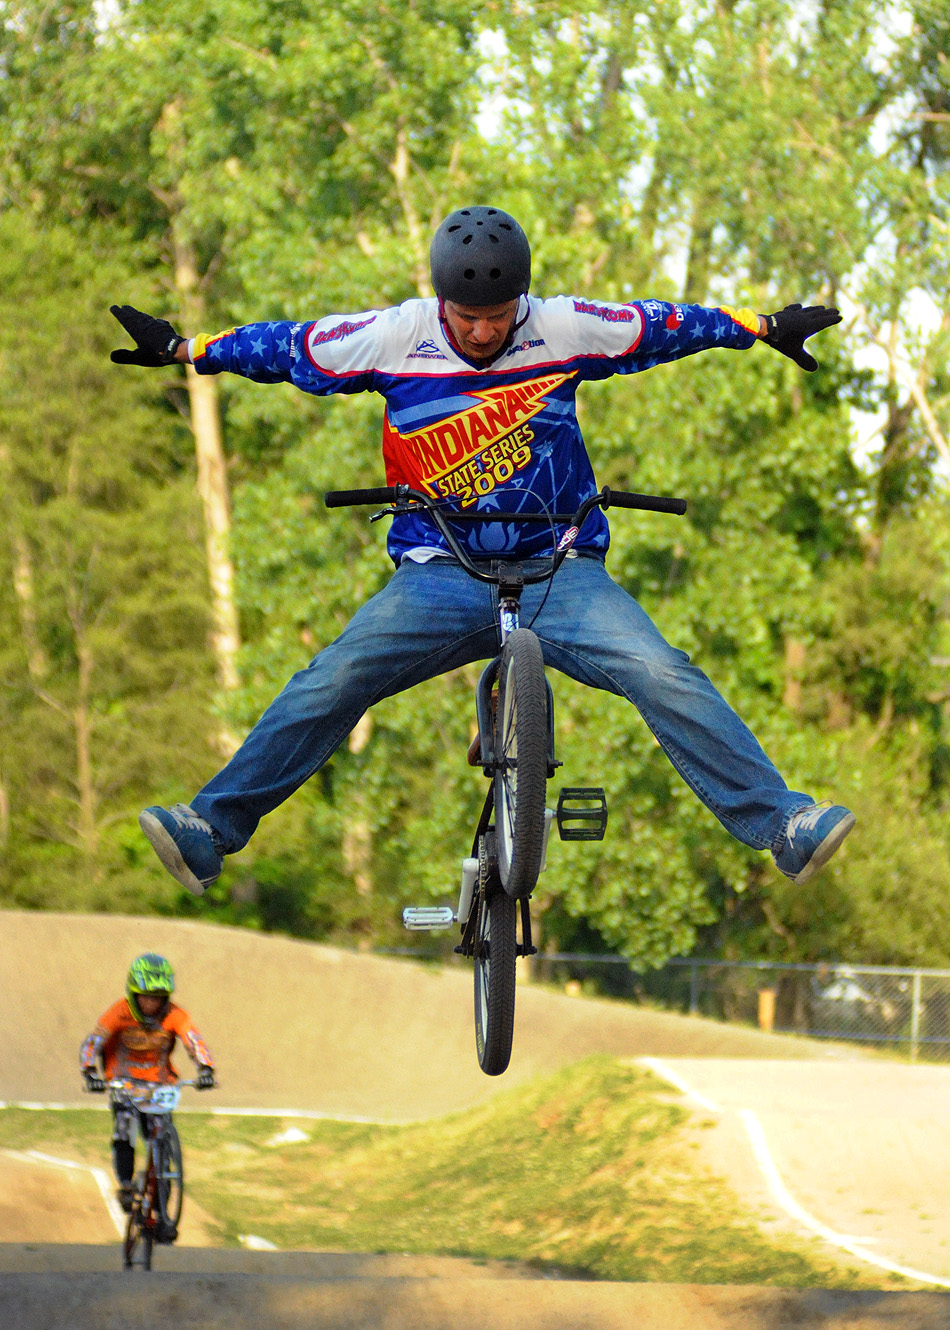 Pro rider Chris Gerber takes flight during a practice run at Hire Park.